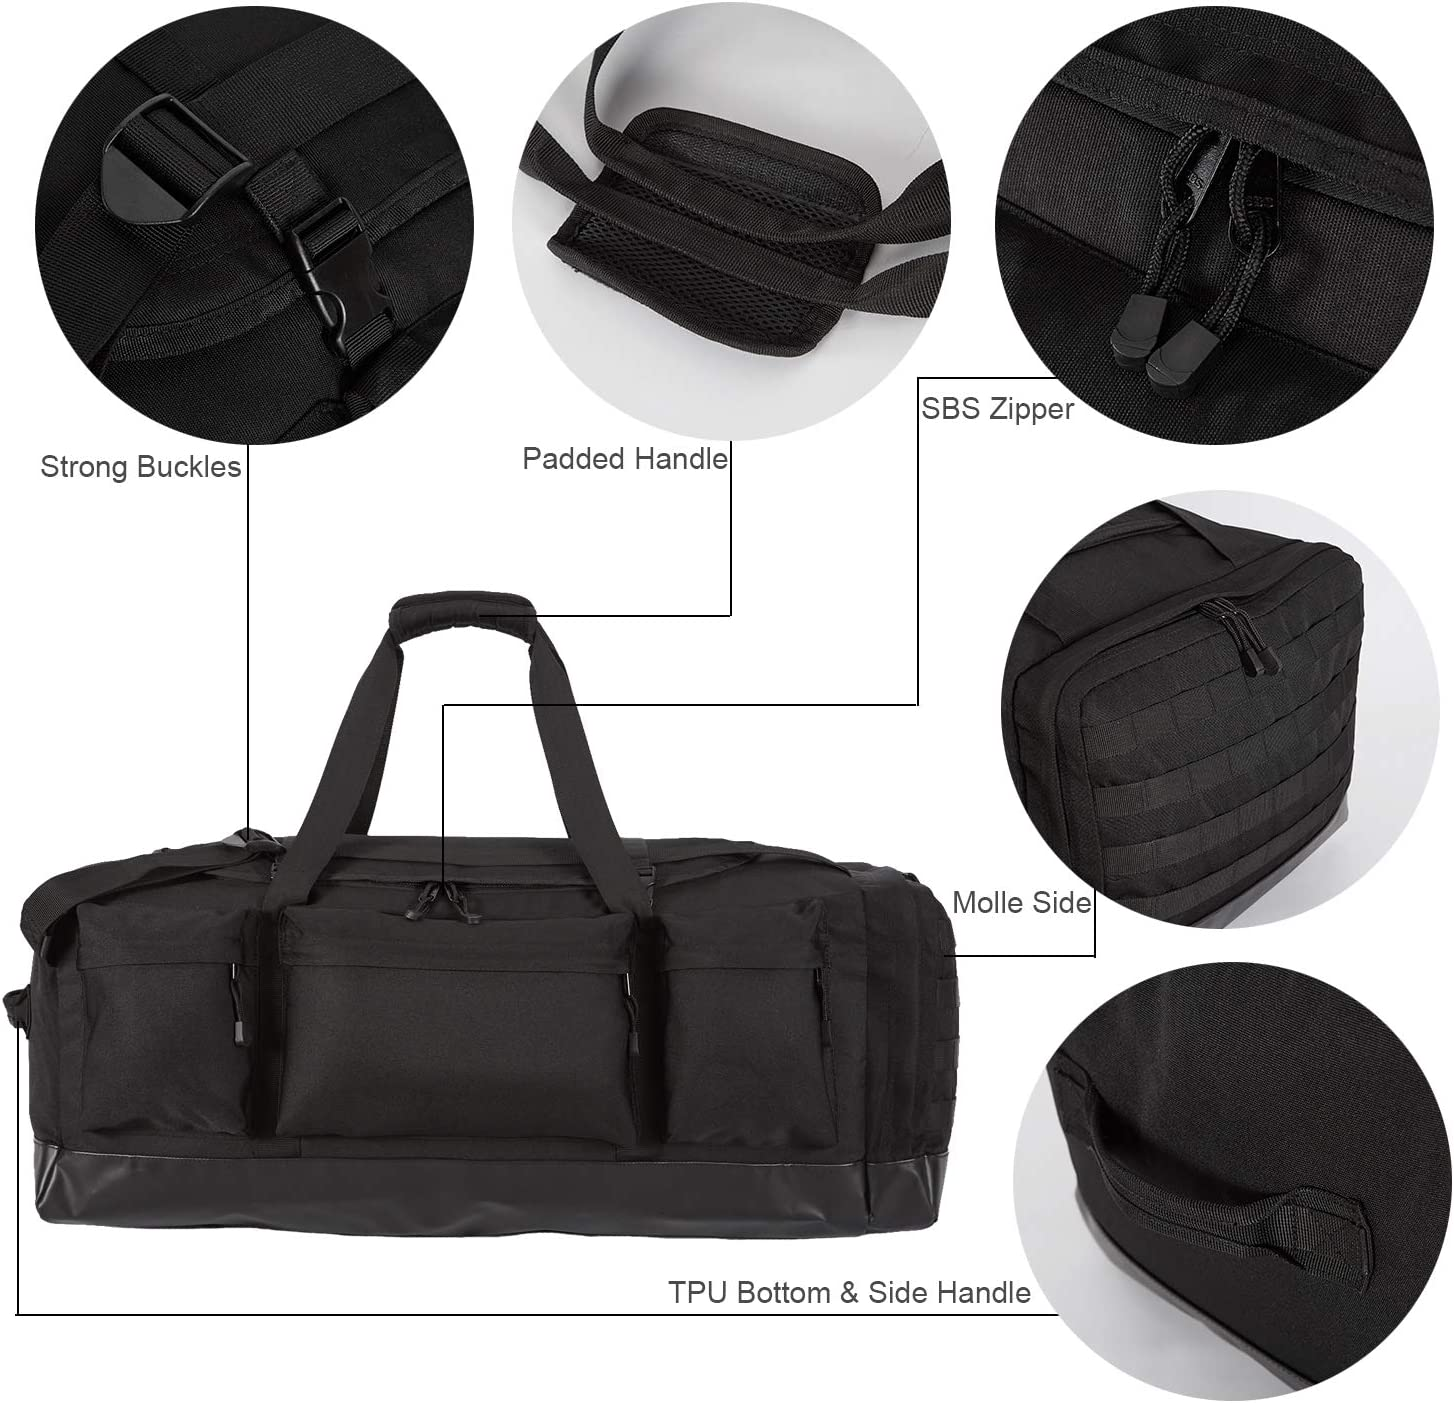 Tactical Molle Duffel Bag 80L with TPU Bottom for Travel Gym Sport